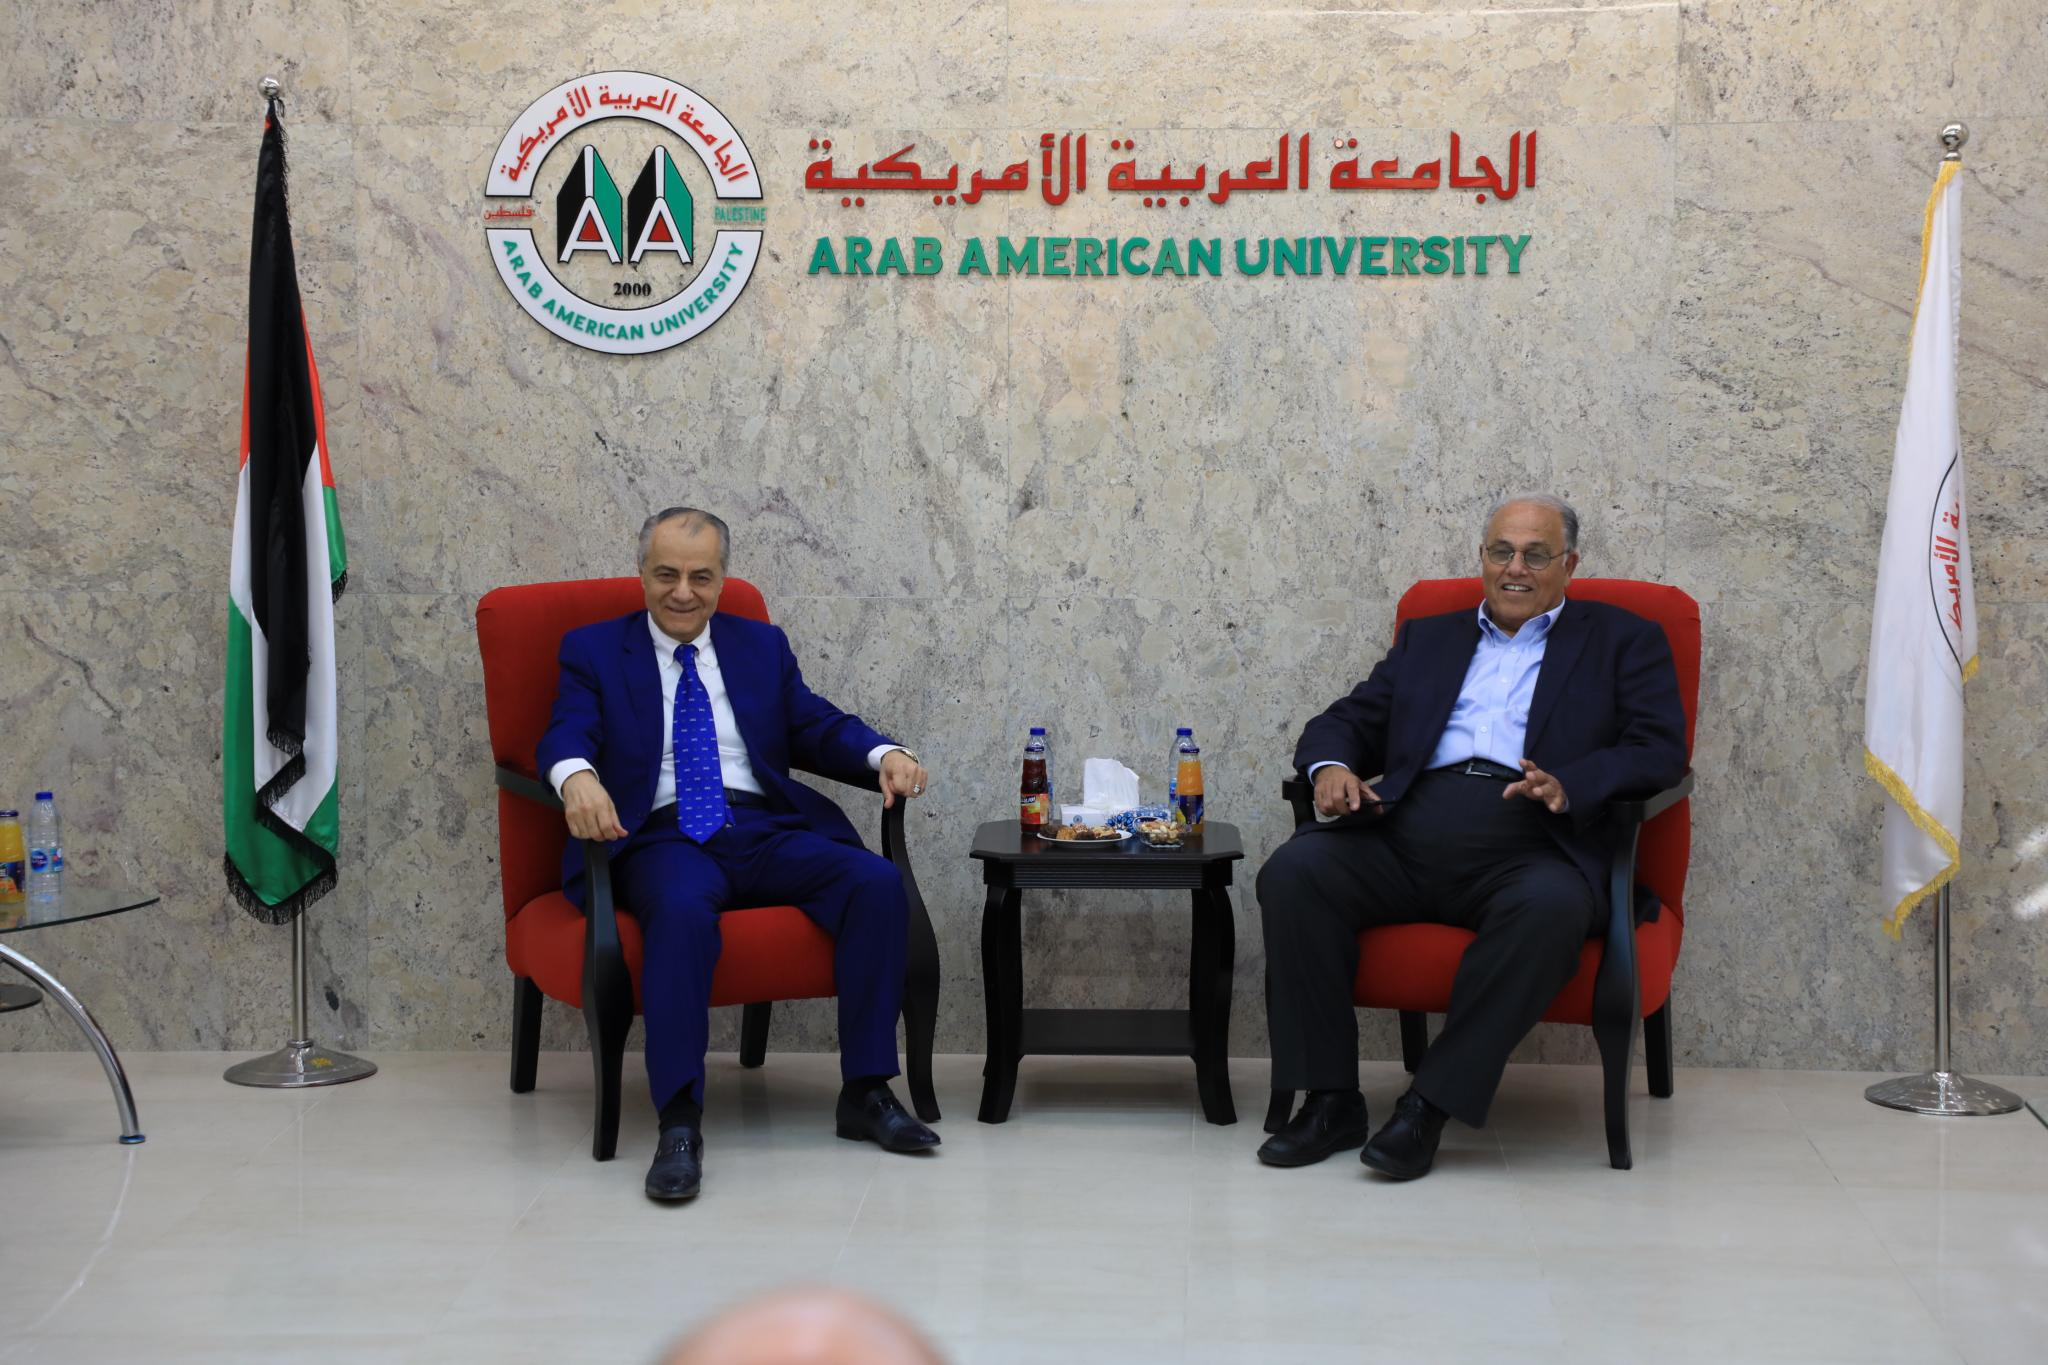 Accompanied by Eng. Zuhair Hijjawi- a Board of Directors Member, a delegation from the Palestinian Labor Council from Dubai and the Northern Emirates has visited the Arab American University.